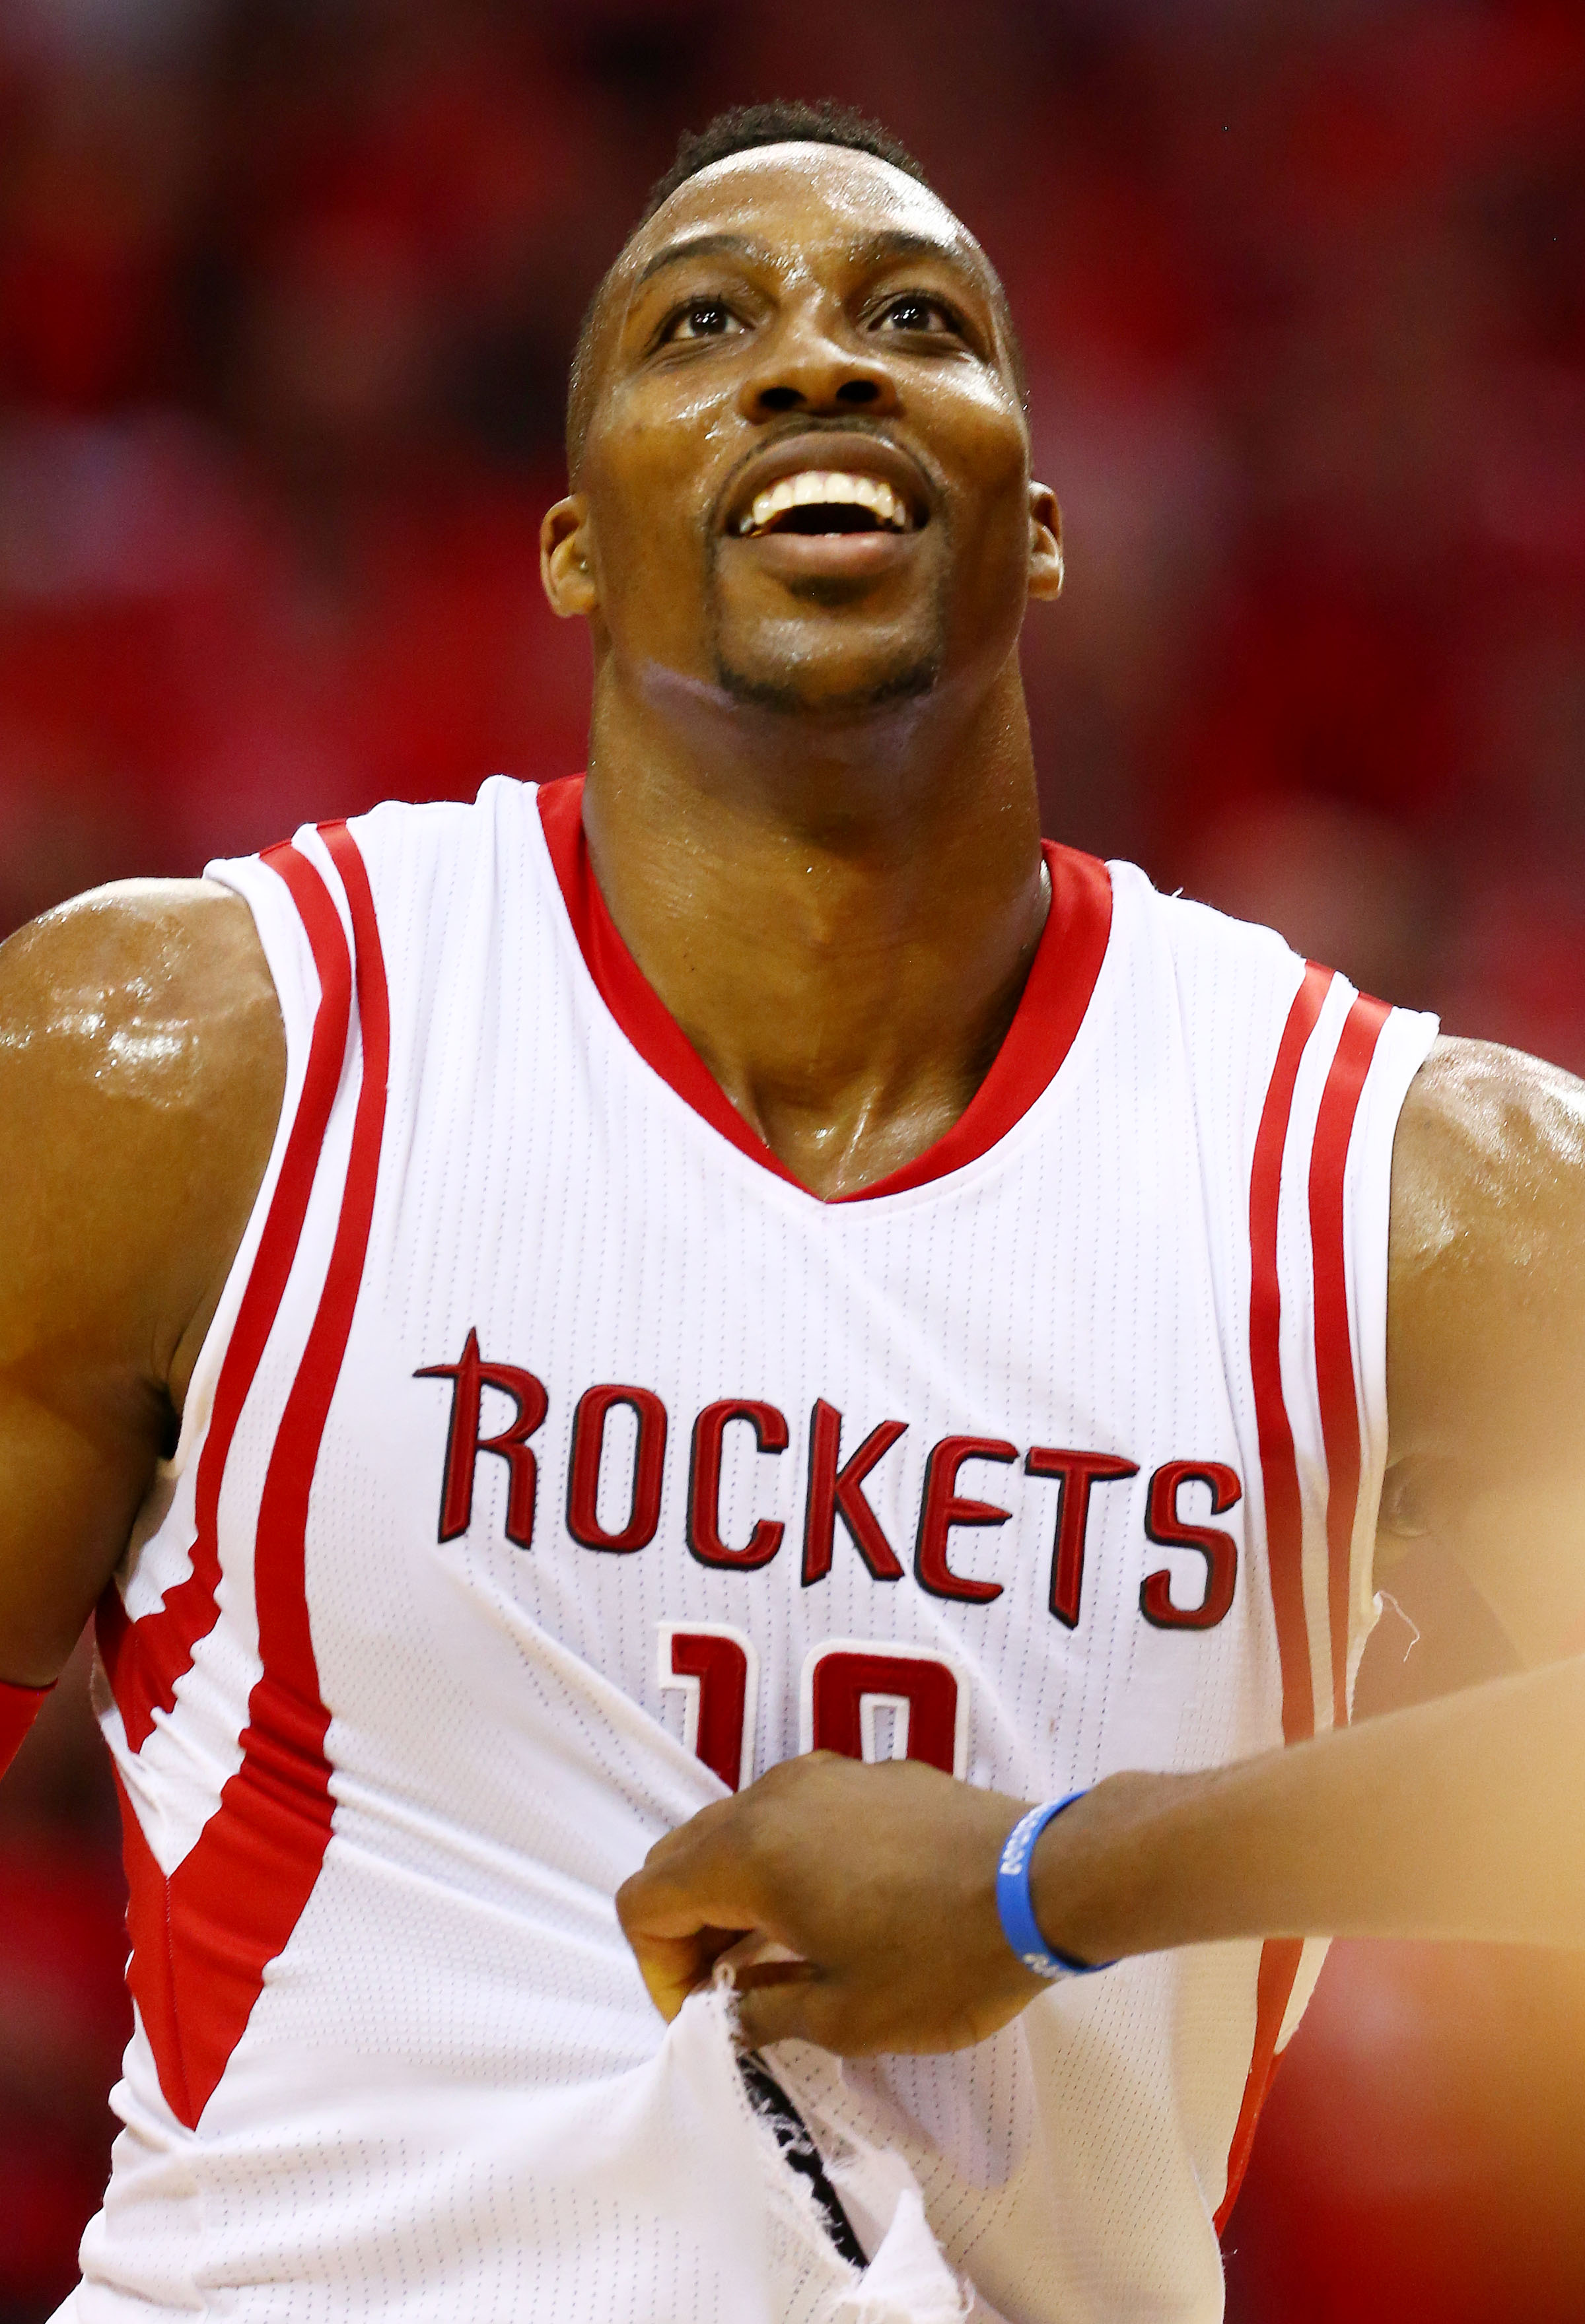 HOUSTON, TX - MAY 25:  Dwight Howard #12 of the Houston Rockets wears a ripped jersey in the second quarter against the Golden State Warriors during Game Four of the Western Conference Finals of the 2015 NBA Playoffs at Toyota Center on May 25, 2015 in Ho